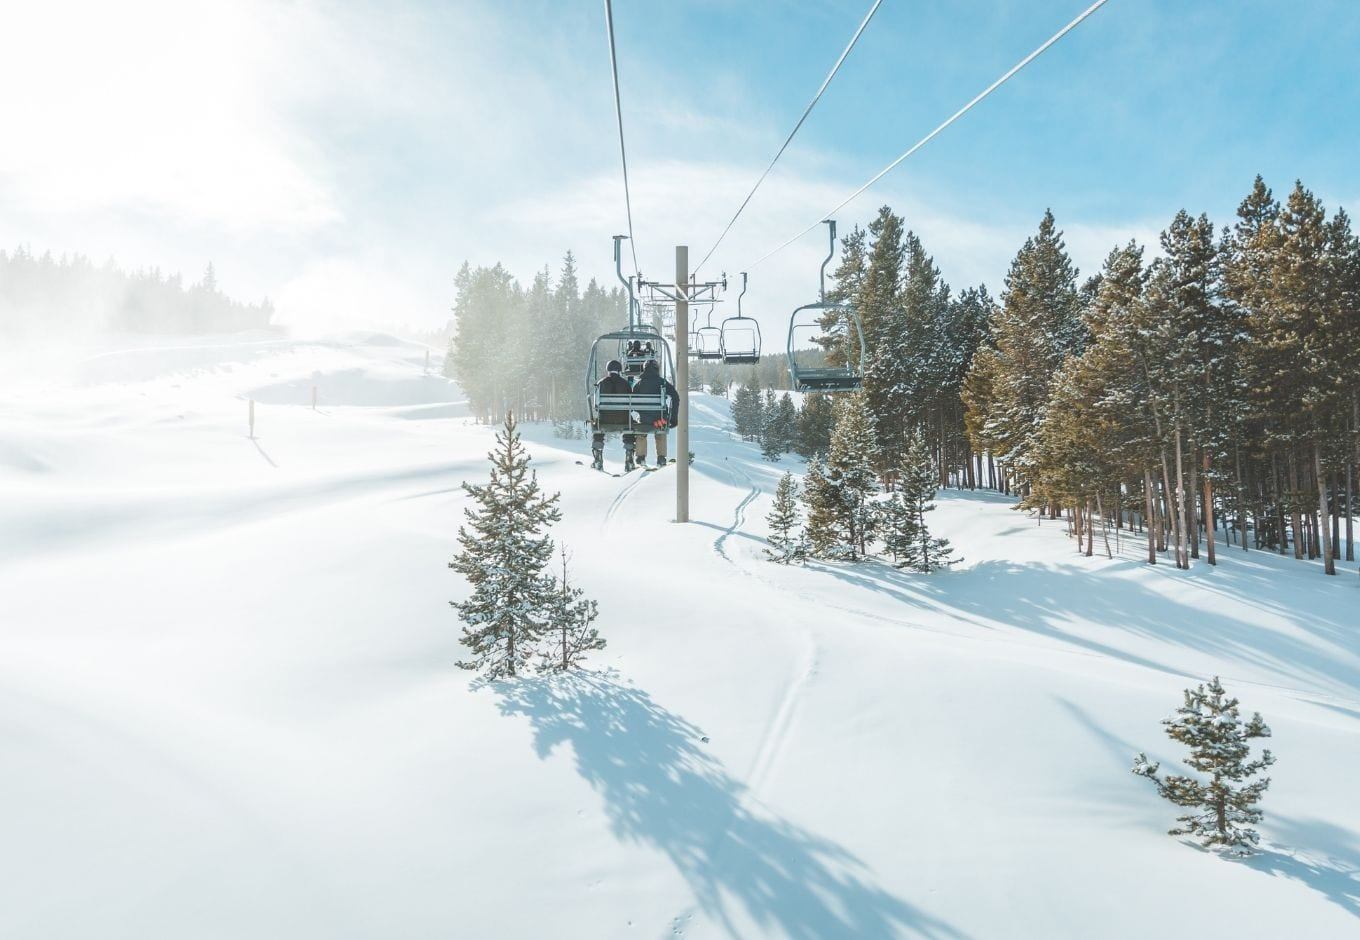 Ski lifts surrounded by snow and pine trees.